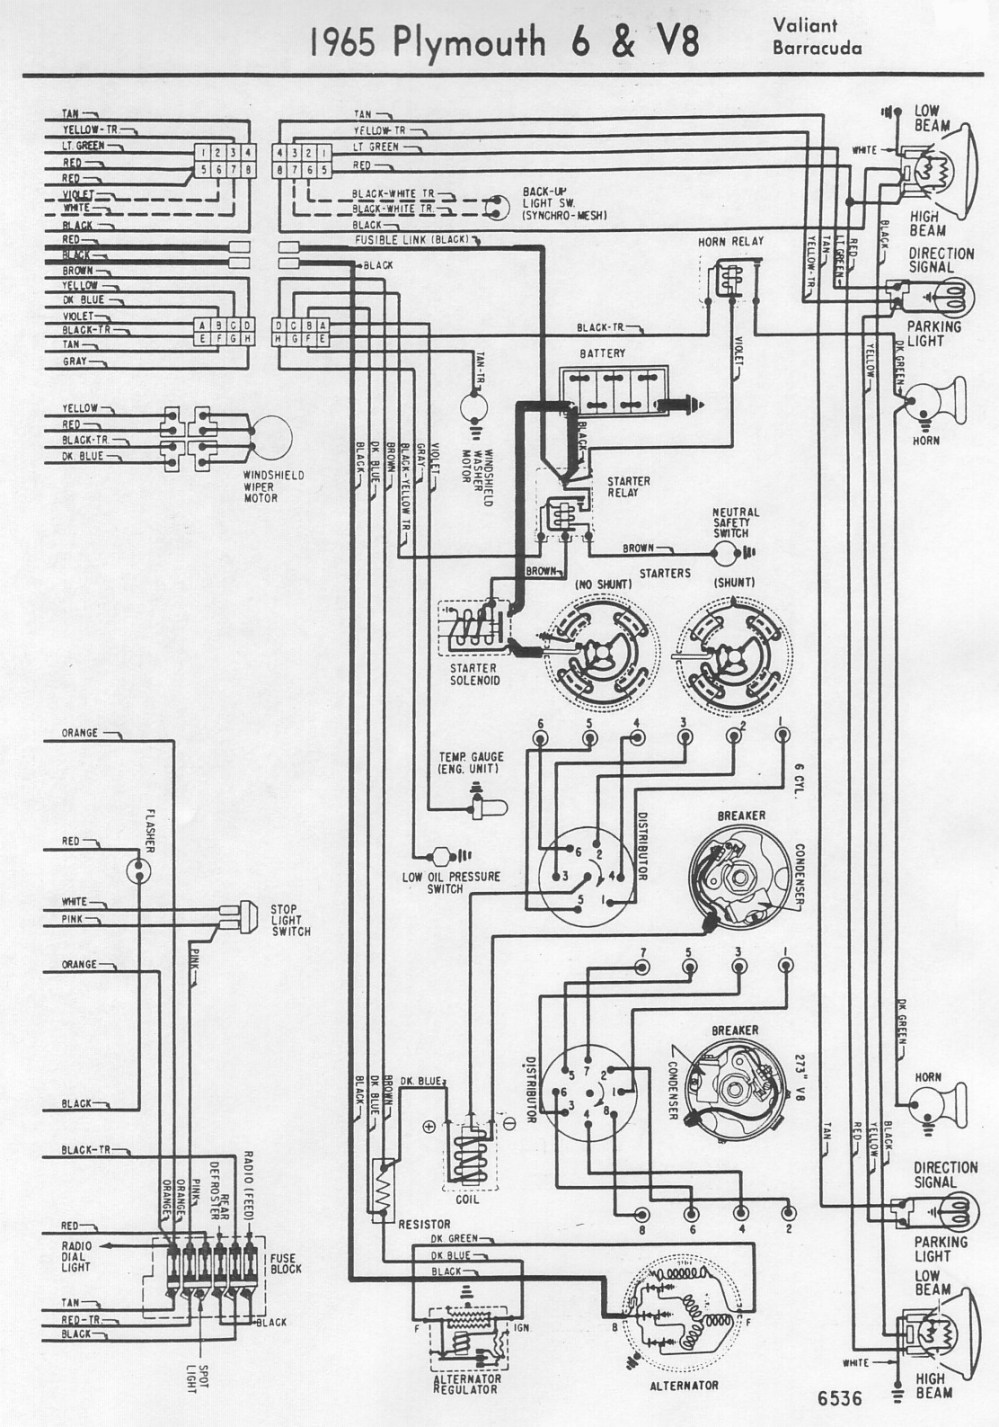 medium resolution of plymouth road runner engine bay diagram wiring diagram row plymouth road runner engine bay diagram